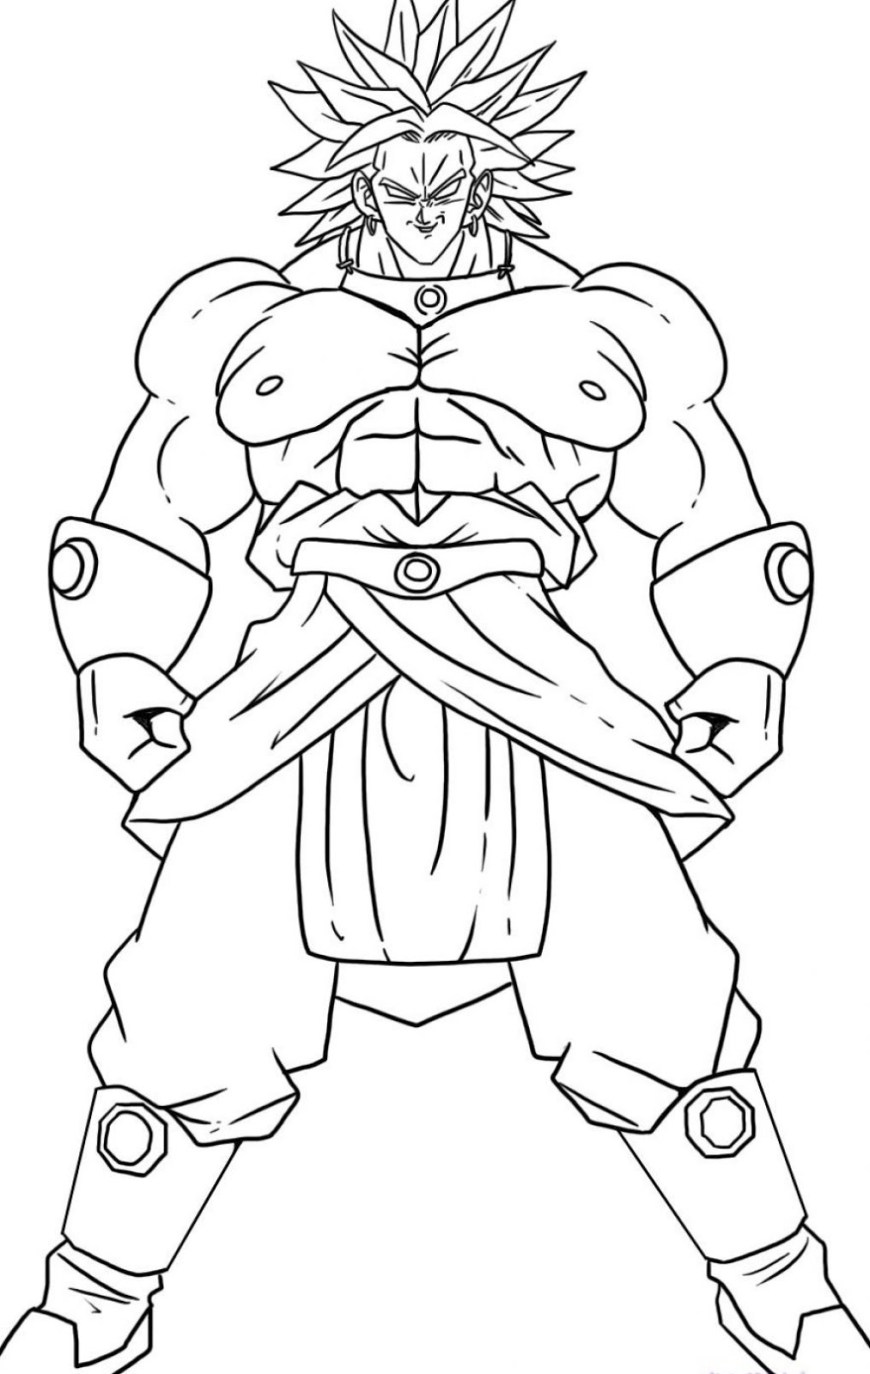 Dragon Ball Super Coloring Pages Broly Super Saiyajin Dragon Ball Z Kids Coloring Pages